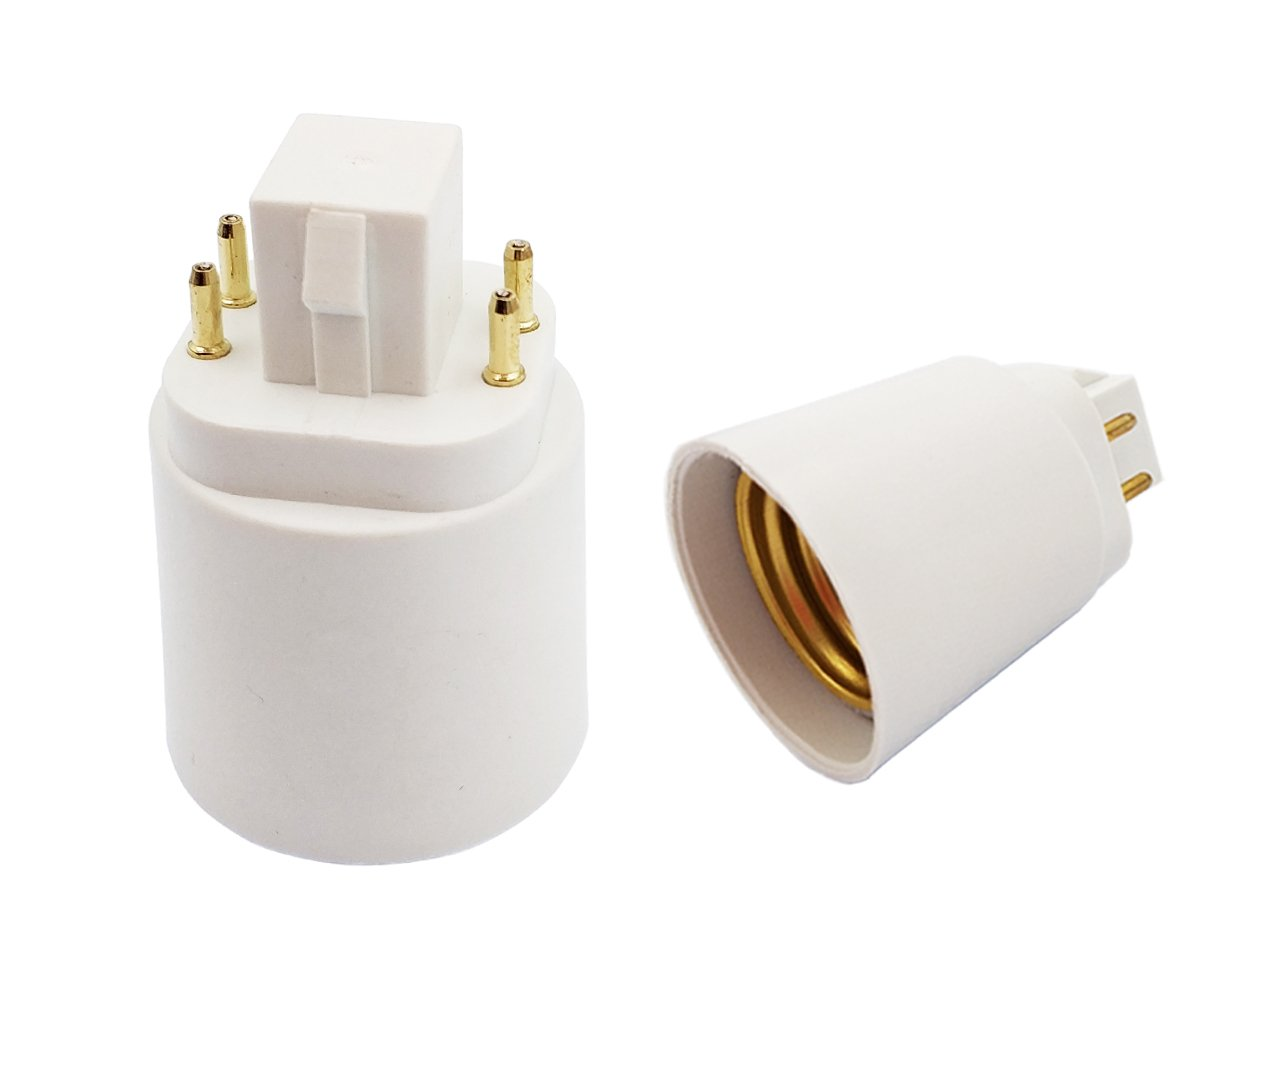 E-Simpo GX24Q To E26 Adapter 4P 15.5mm G24Q to E27 adapter, Gx24q to E26 Lamp Base Converter,Rohs, Short Center Square Part, for USA Applications! Need Bypass the inside Ballast! (16-Pack)